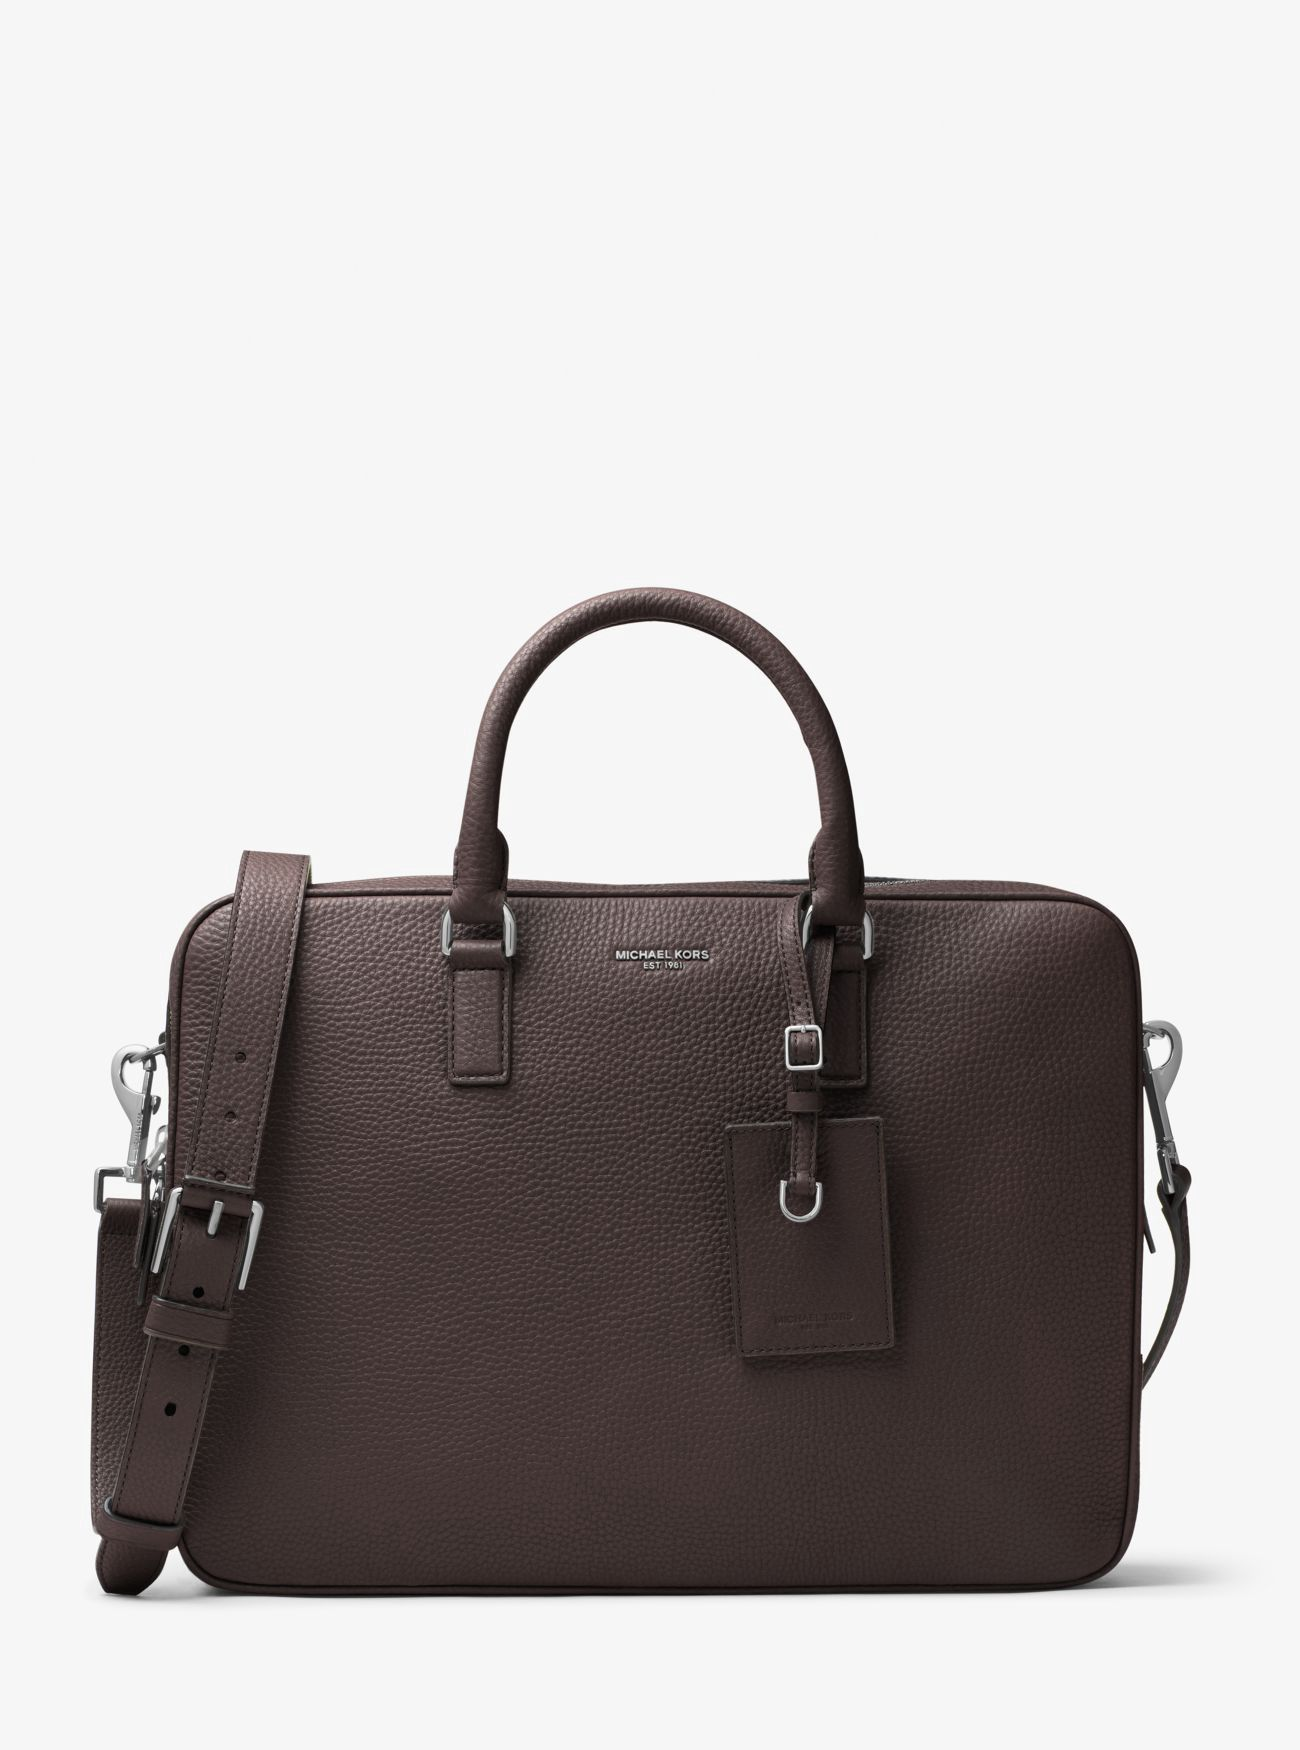 8182fdda267c MICHAEL KORS Bryant Large Leather Briefcase.  michaelkors  bags  polyester   leather  lining  accessories  shoulder bags  phone case  hand bags  cotton